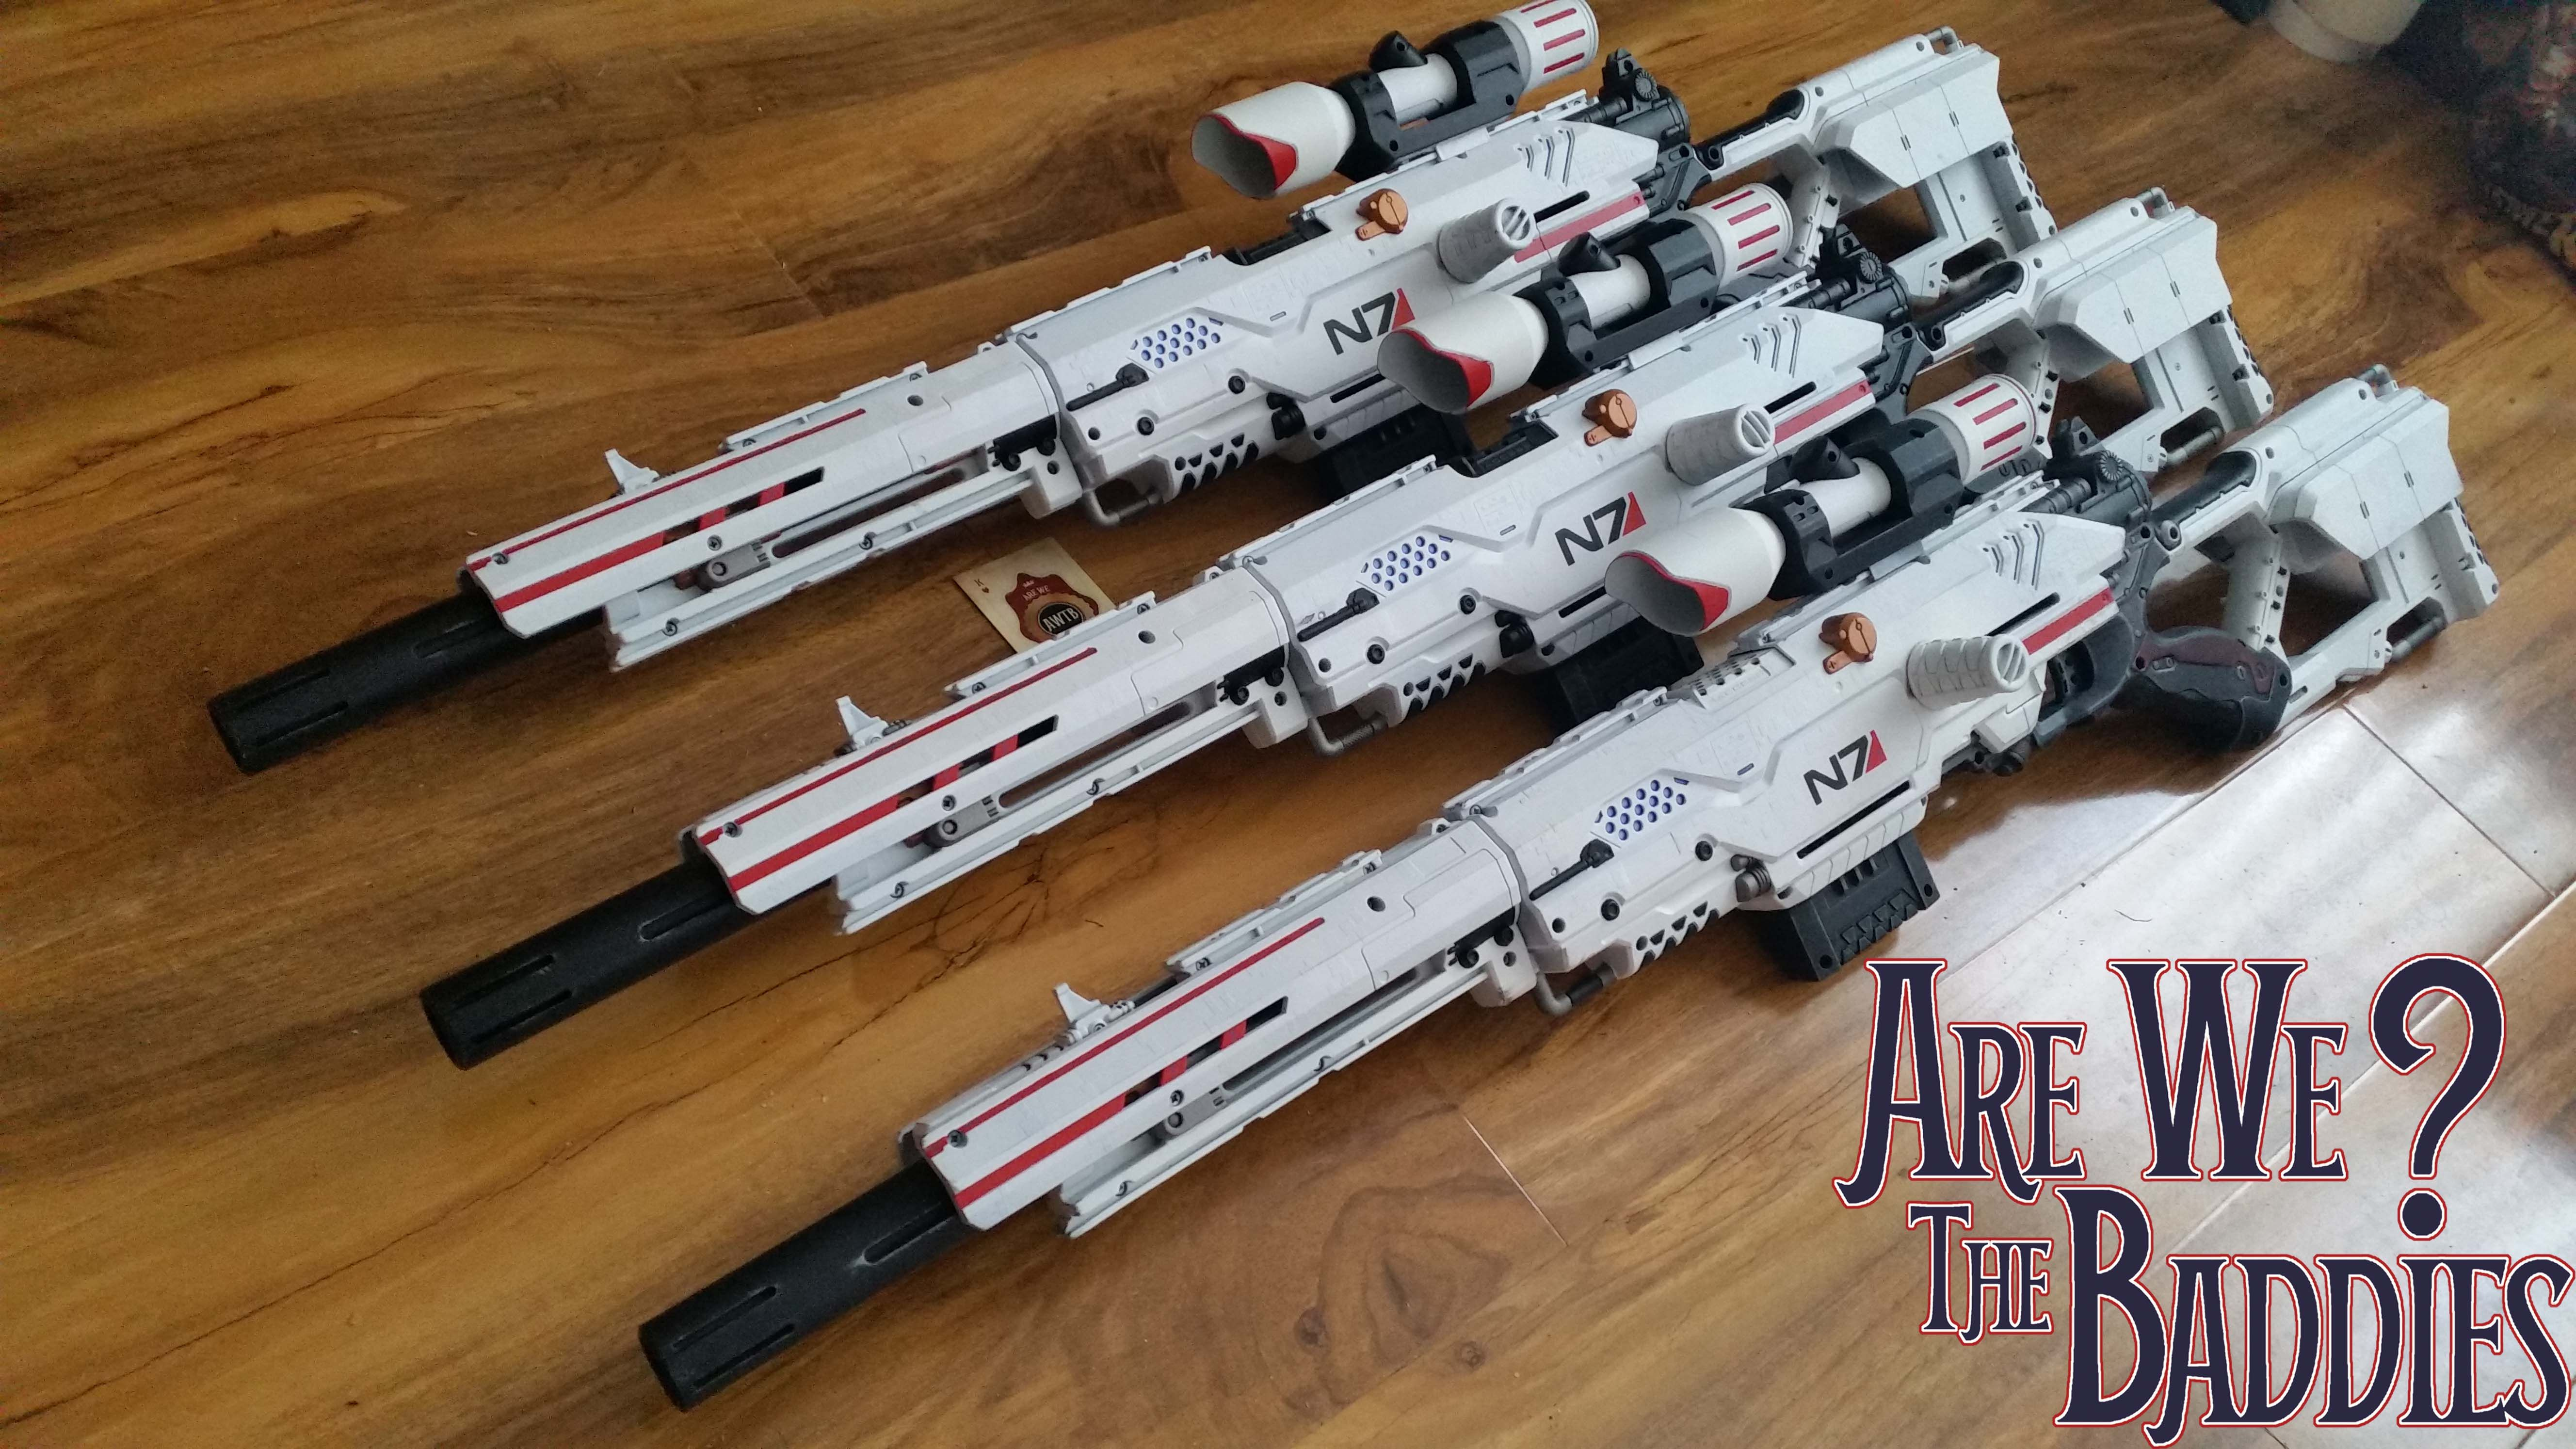 mass effect n7 sniper rifles created from just spending hours and